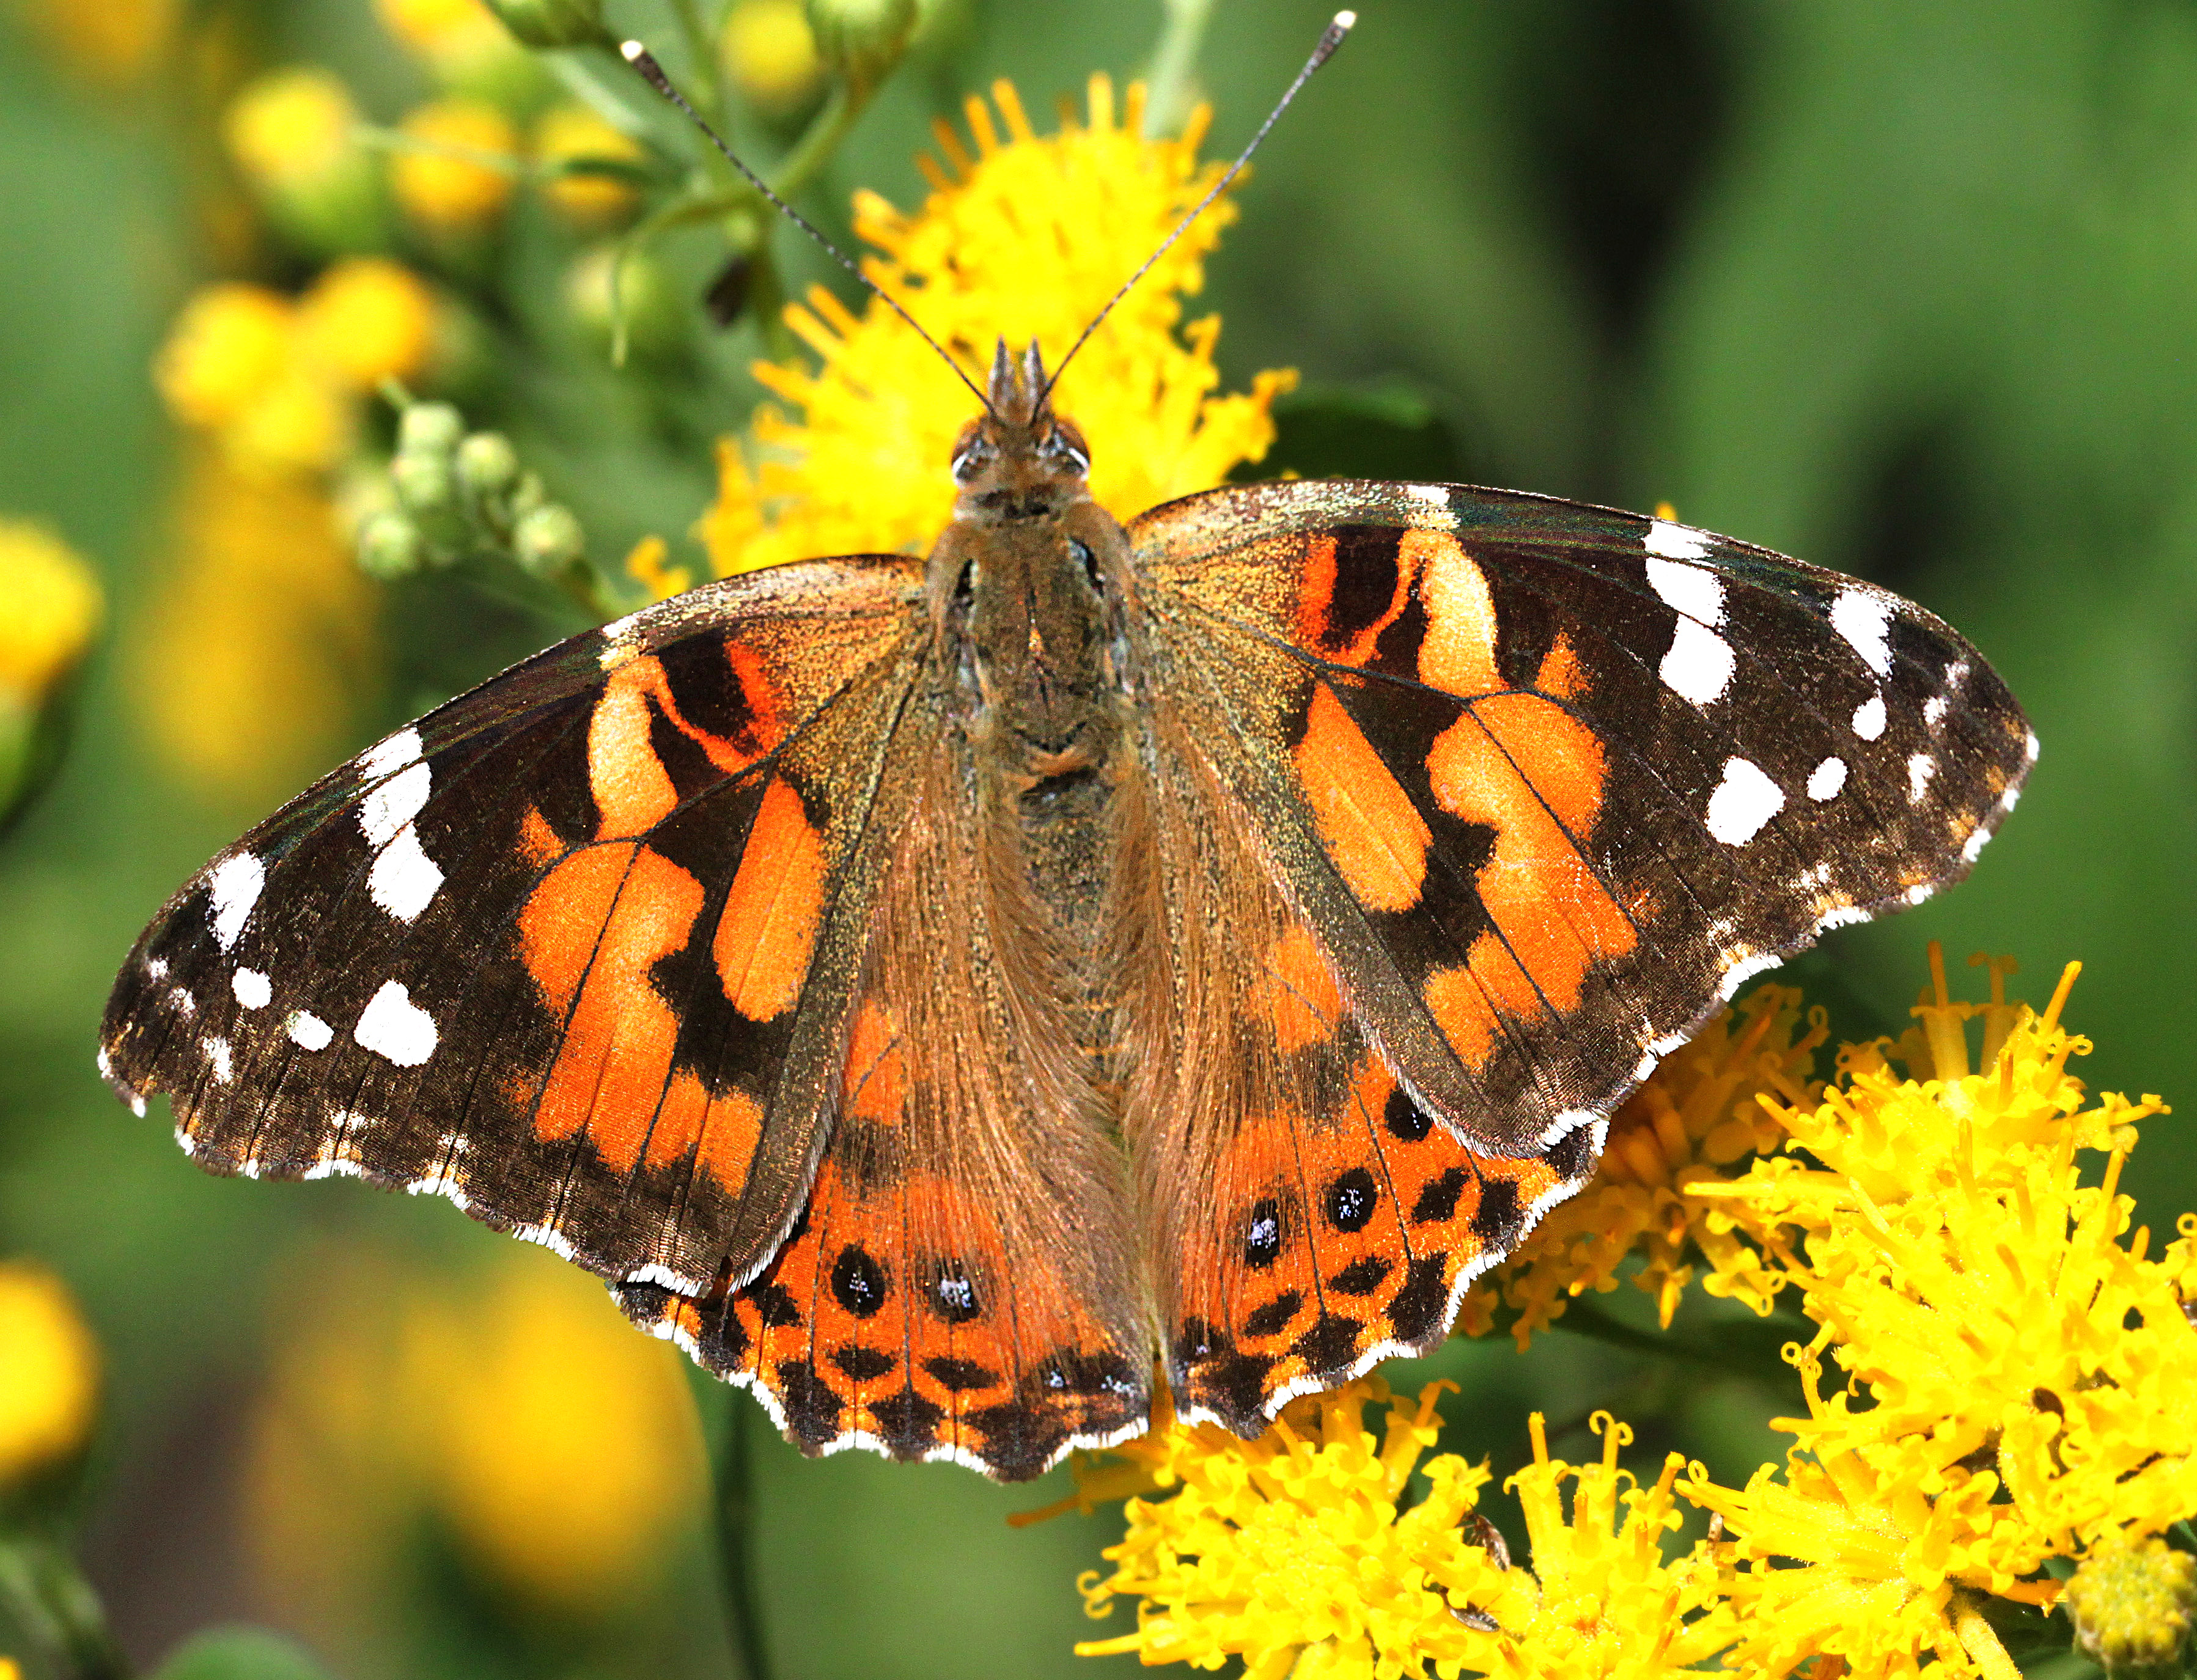 LADY, PAINTED (Vanessa cardui) (8-11-12) hannigan meadows, white mountains, az - (8), Animal, Bright, Butterfly, Insect, HQ Photo